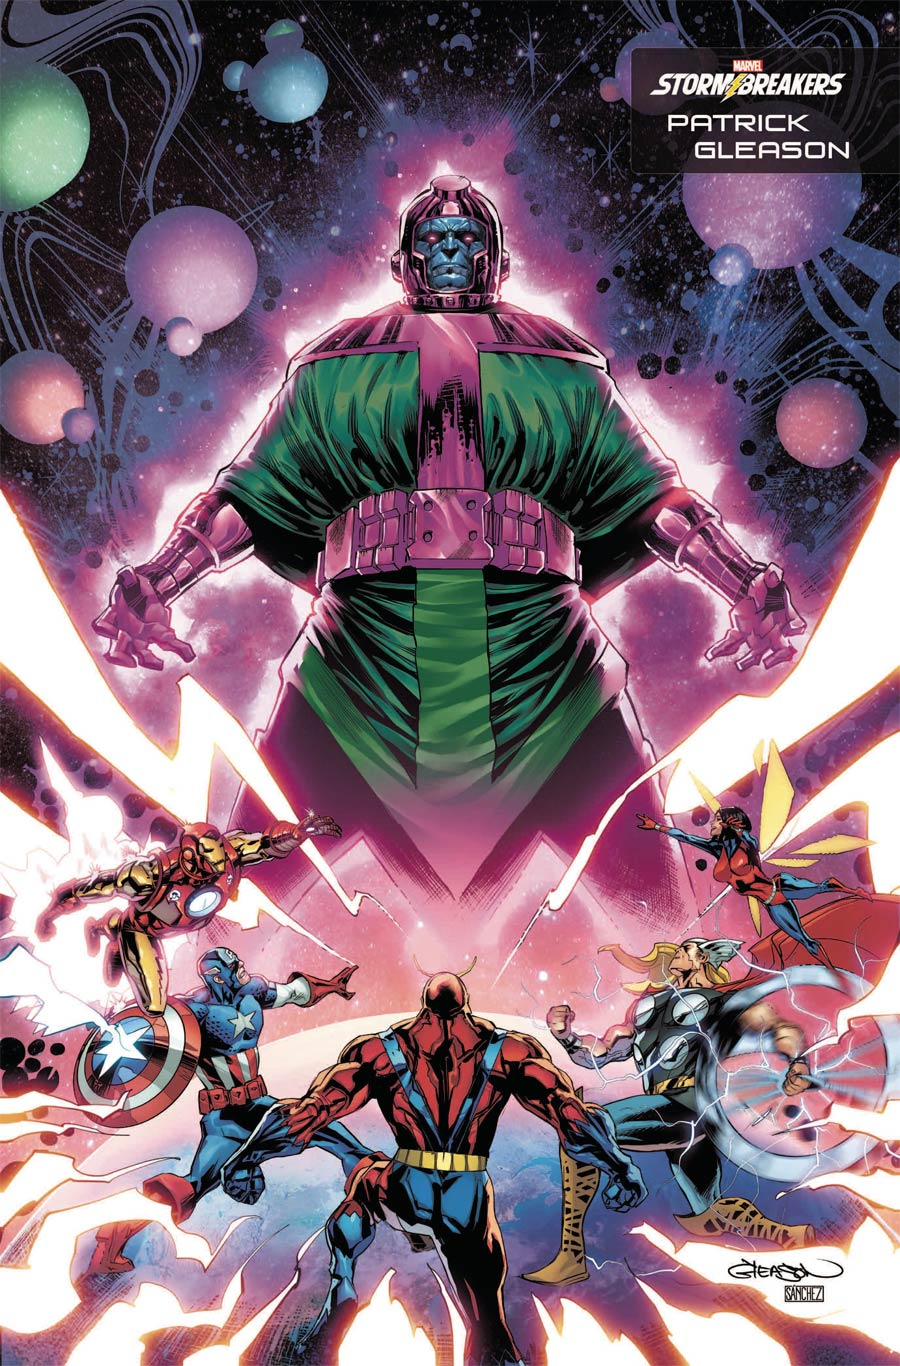 Kang The Conqueror #1 Cover G Variant Patrick Gleason Stormbreakers Cover